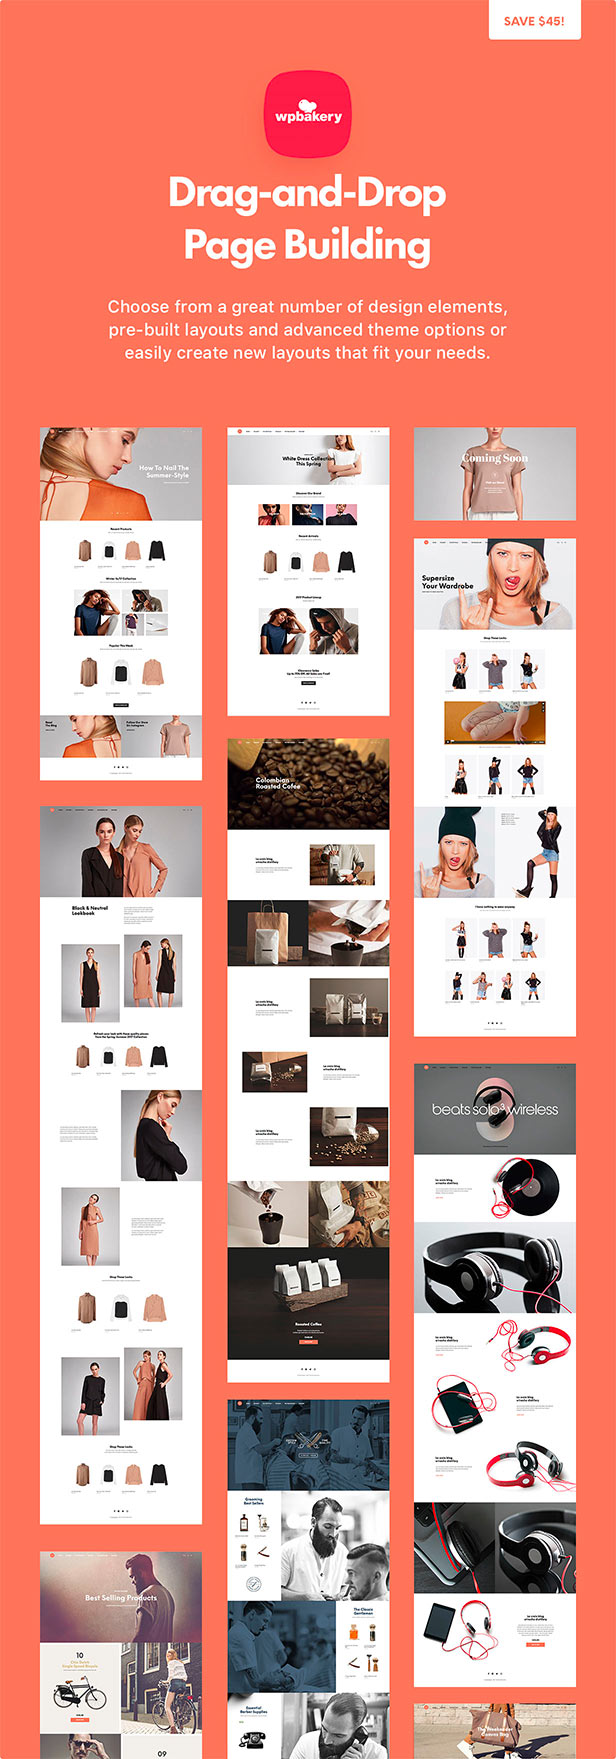 Shopkeeper - eCommerce WP Theme for WooCommerce - 13